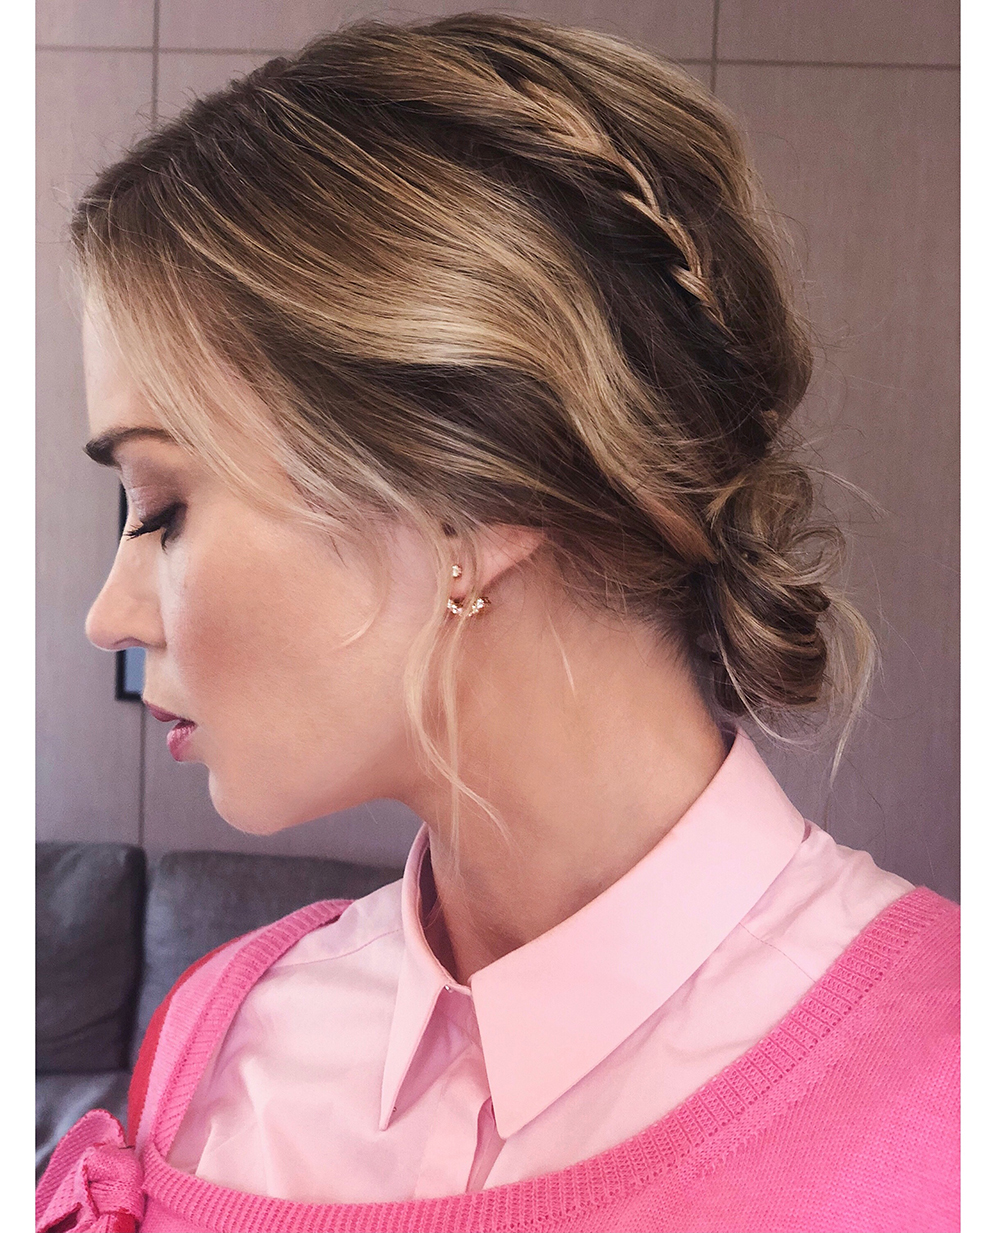 The style can be left down as a low ponytail or pulled into a loose bun.